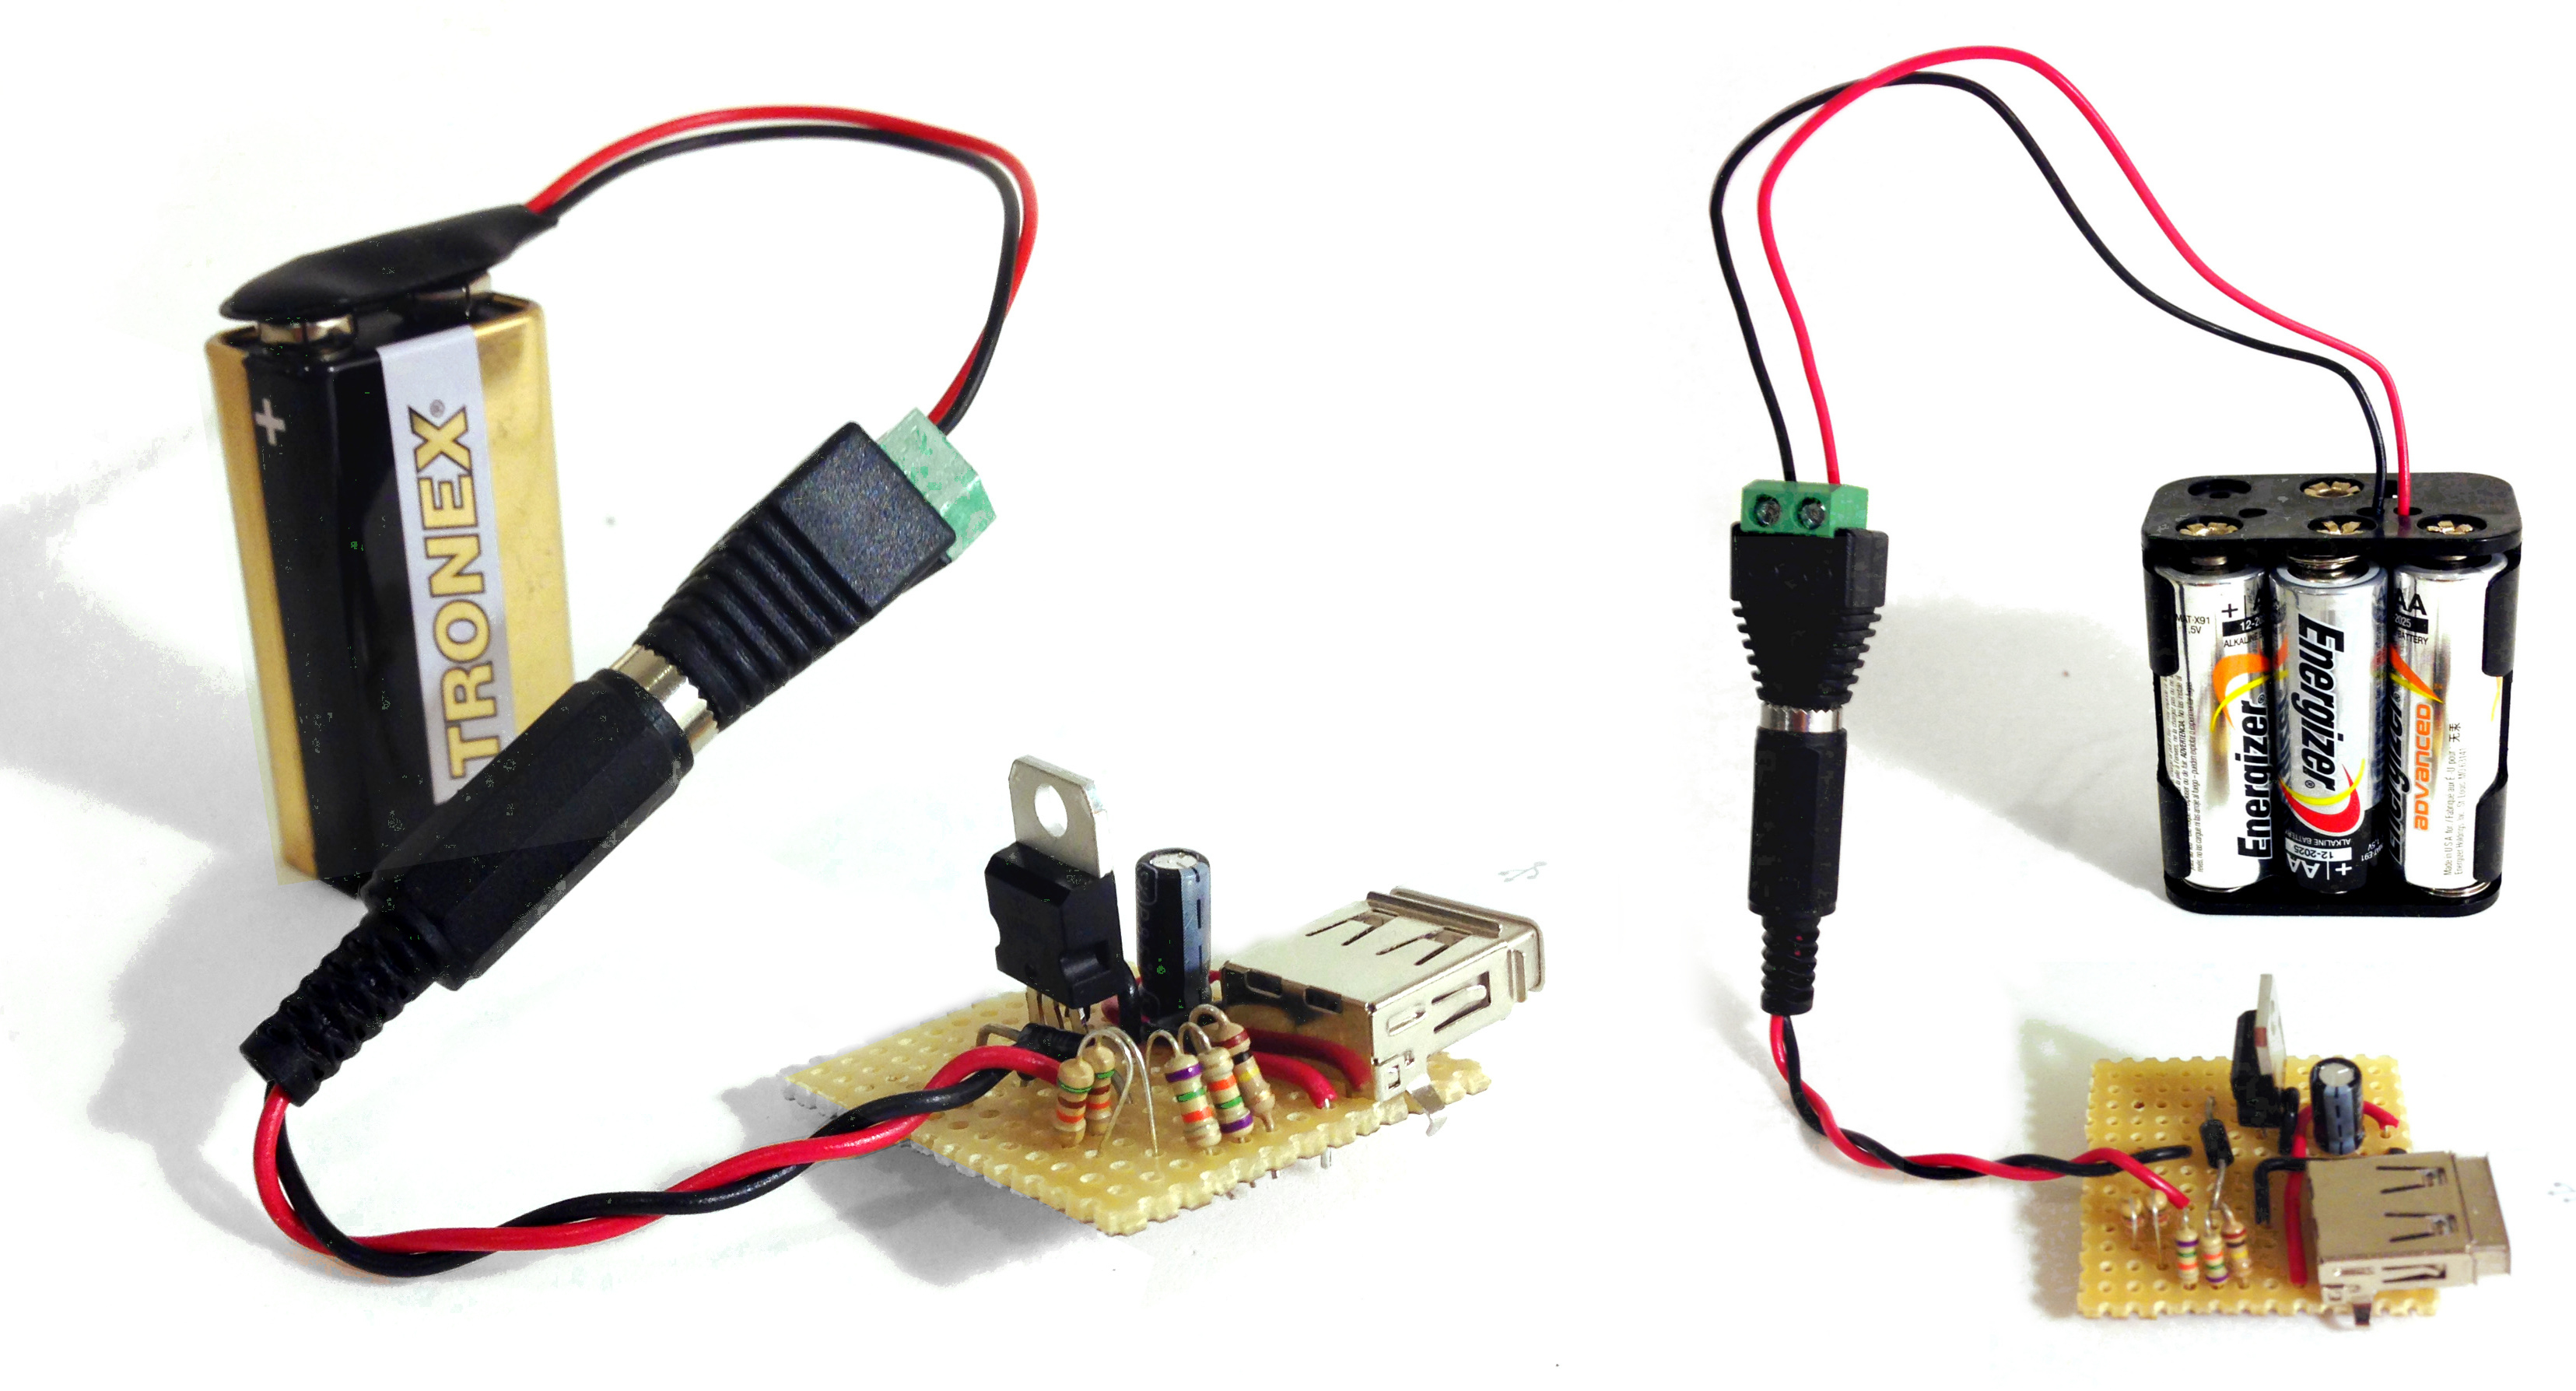 Portable Usb Charger Circuit - Build Electronic Circuits - Circuit Diagram Of Usb Charger Wiring